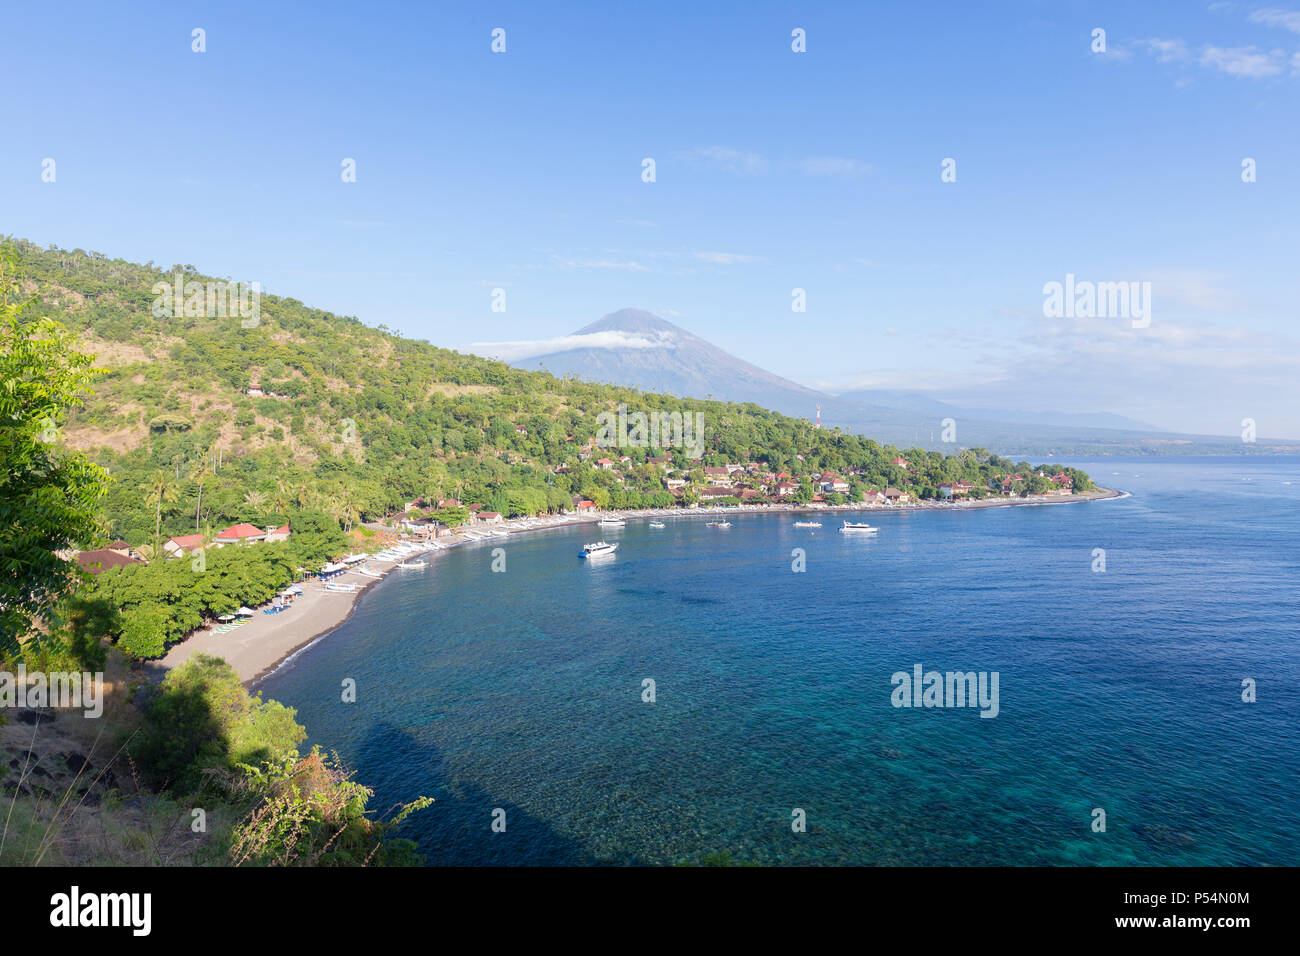 Amed beach with the Agung volcano in the background, Bali, Indonesia - Stock Image